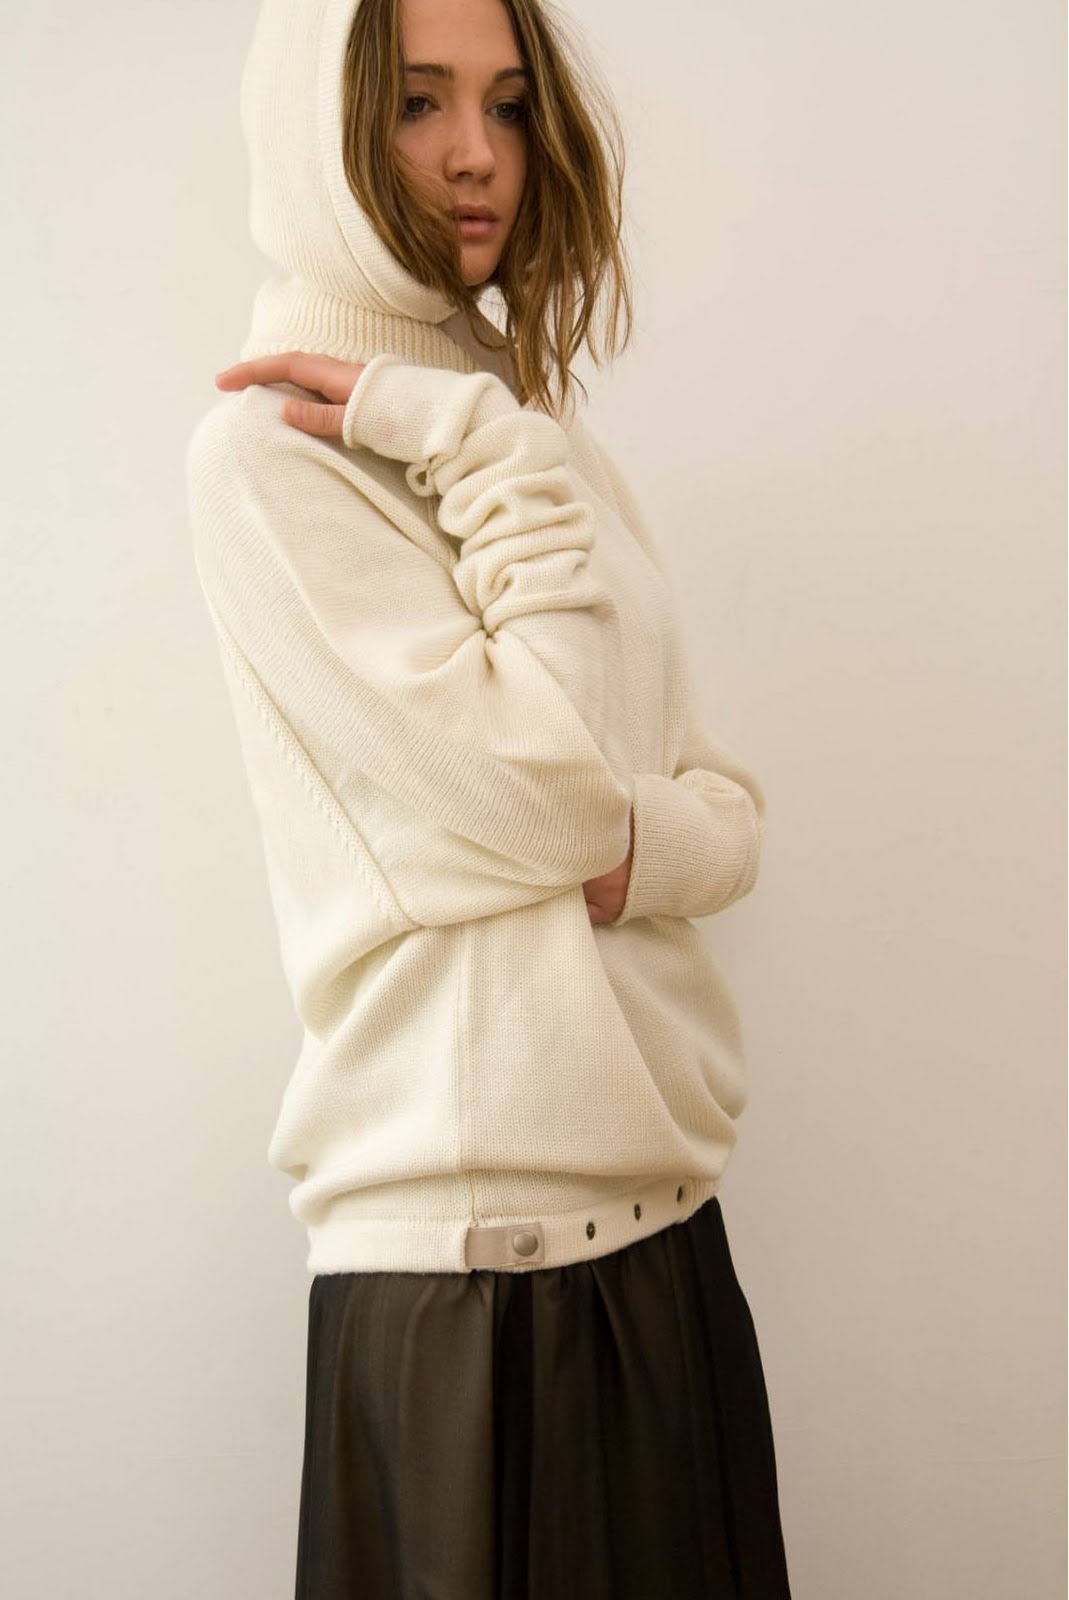 gail travis white hooded sweater